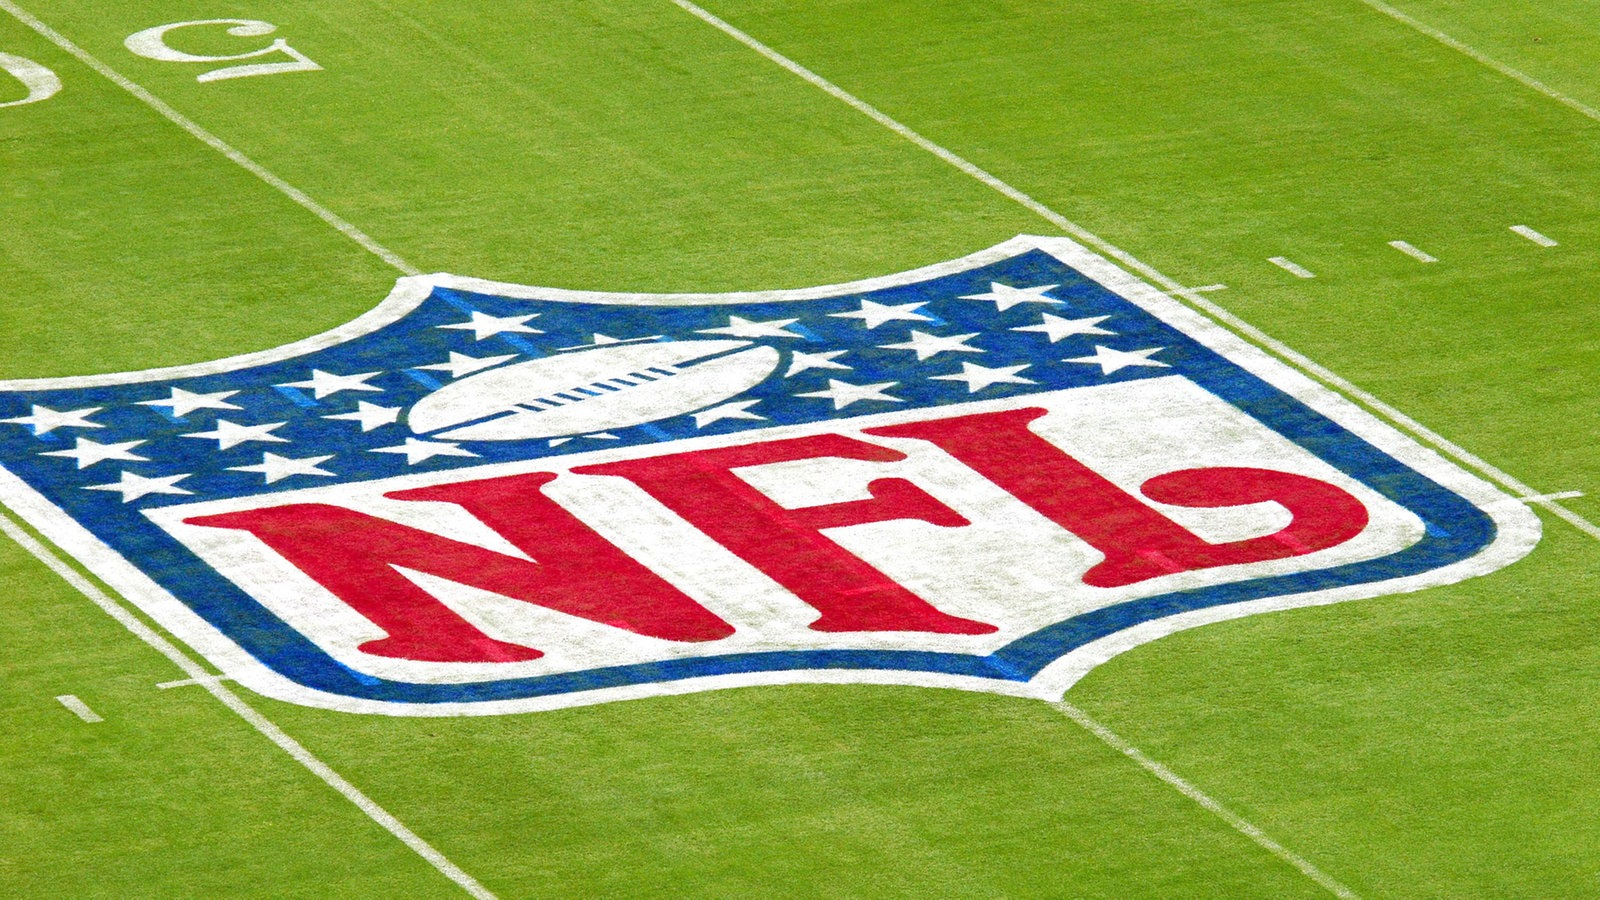 Sport News: NFL not coming to Europe